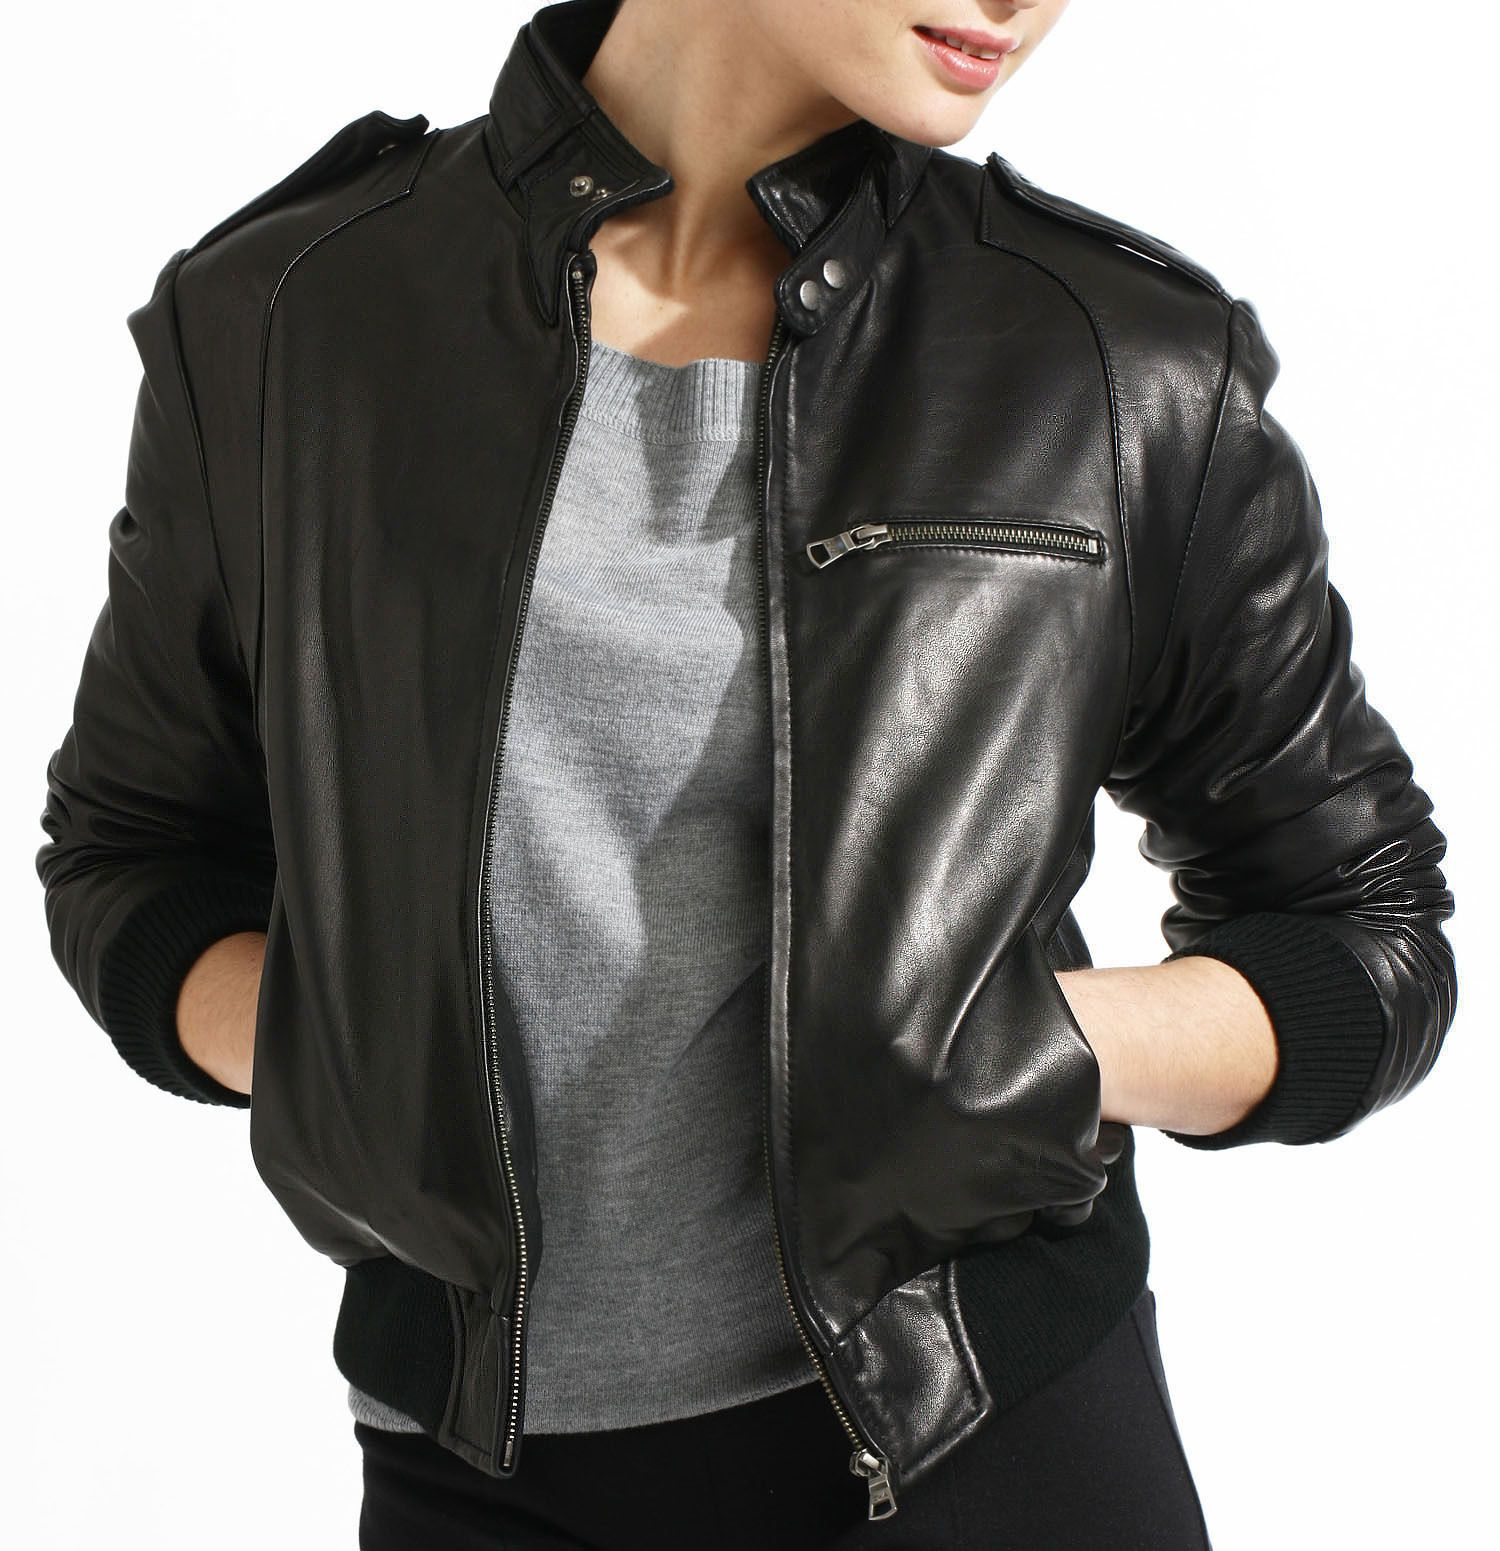 Classic Black Leather Bomber Jacket for Women Leather